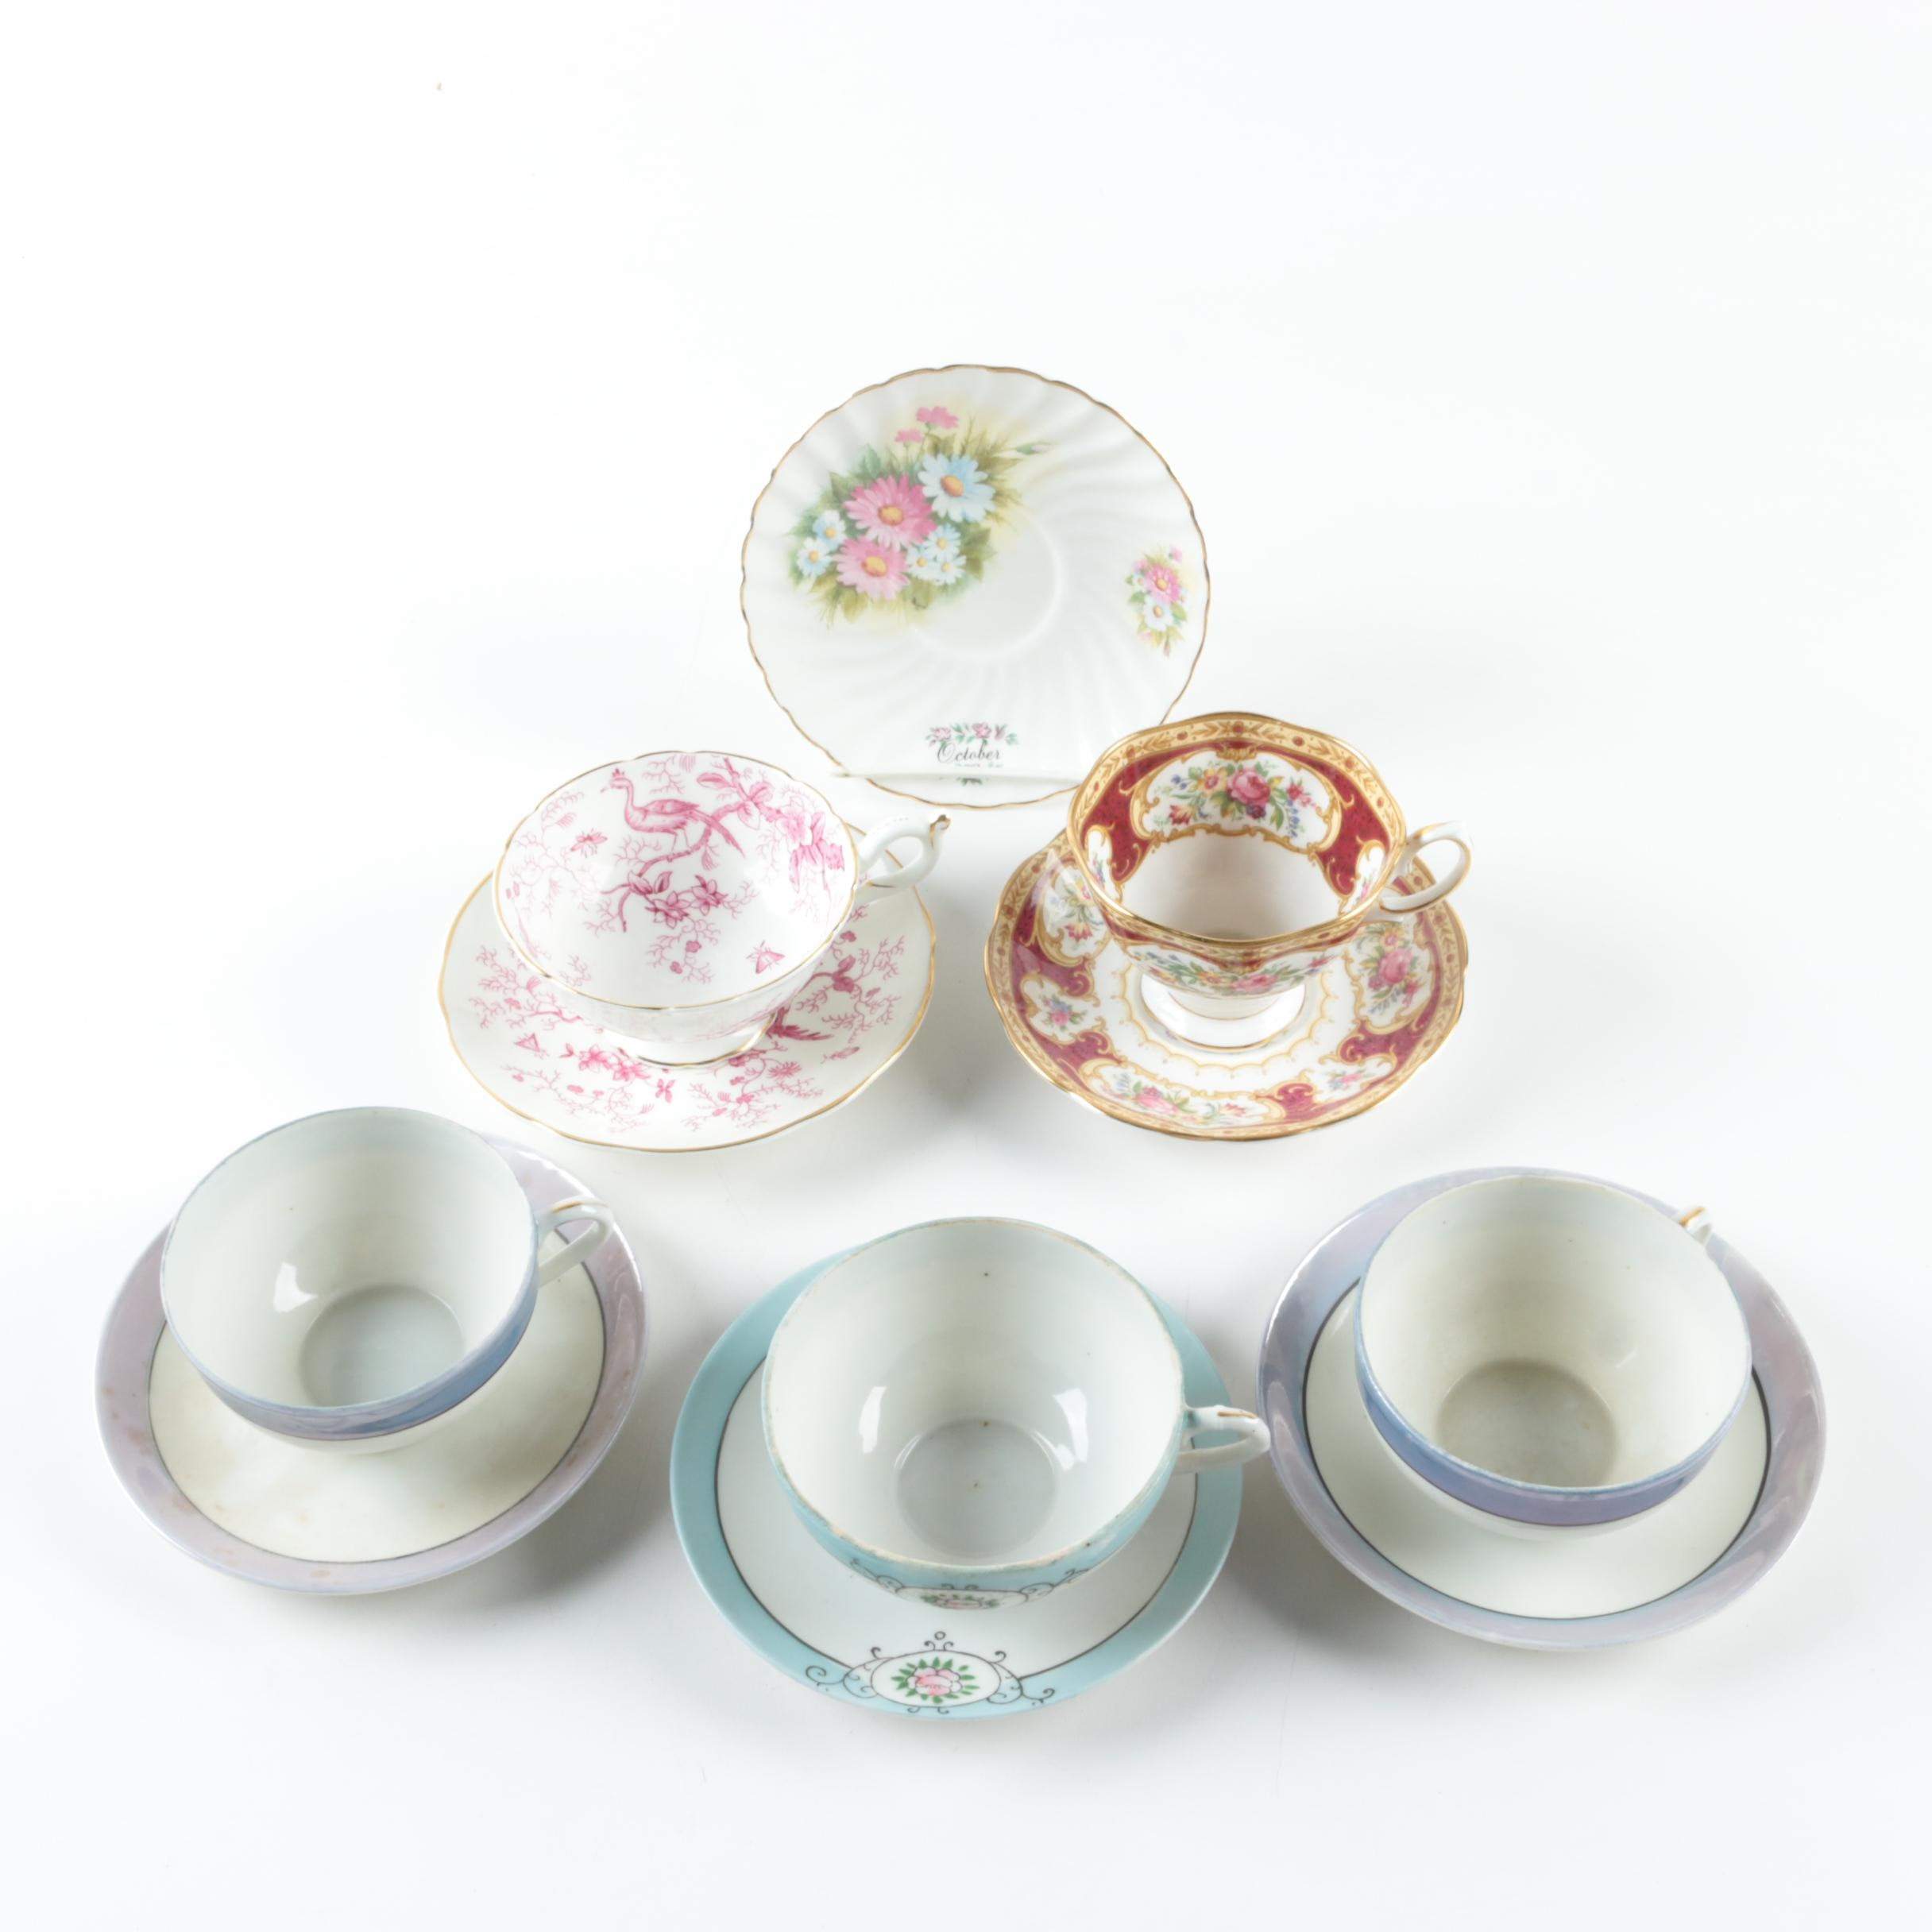 """Coalpoart """"Cairo"""" and Other Teacups and Saucers"""